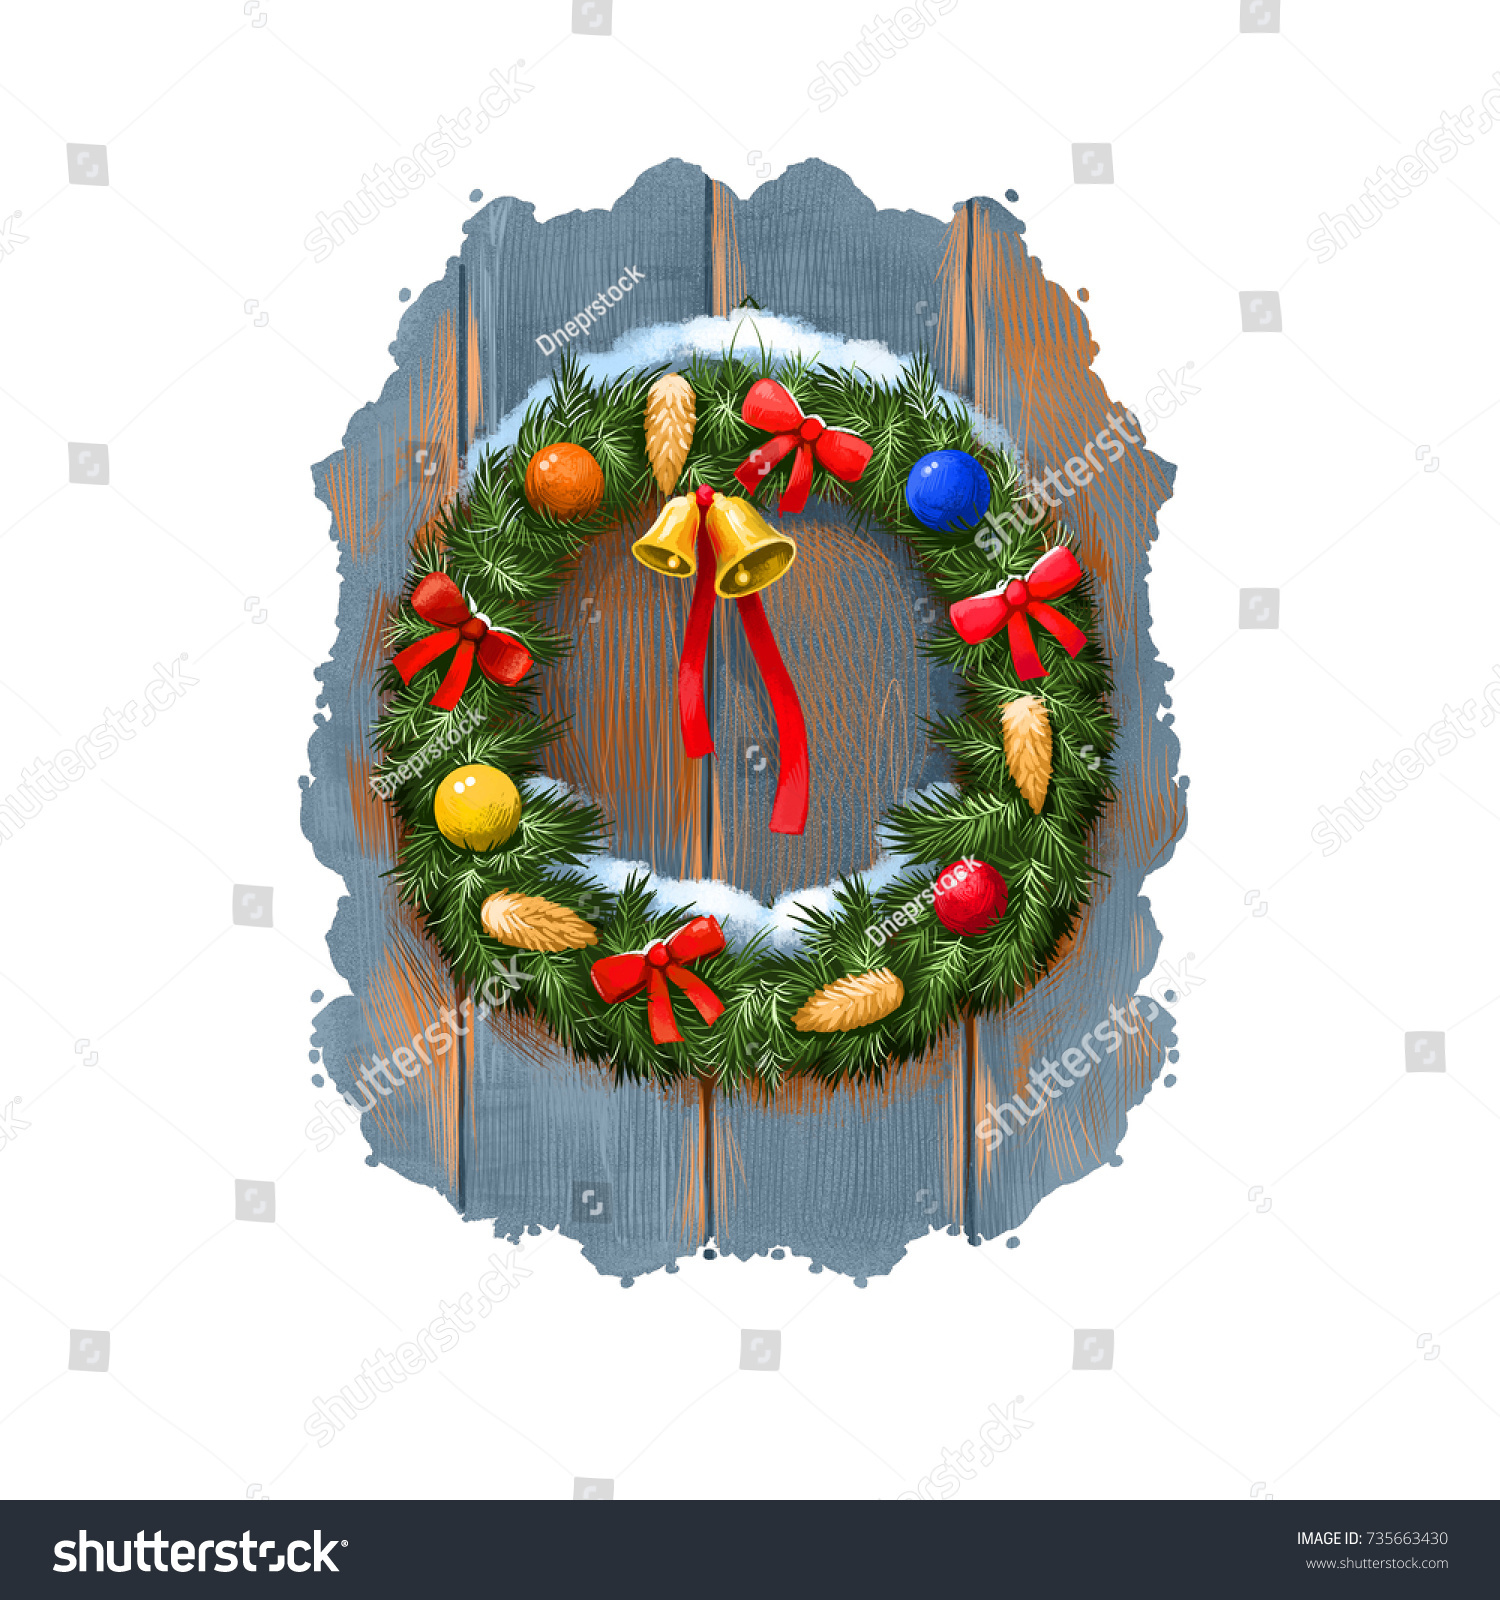 digital art illustration of christmas tree door decoration wreath with bells cones ribbon - Christmas Digital Decorations